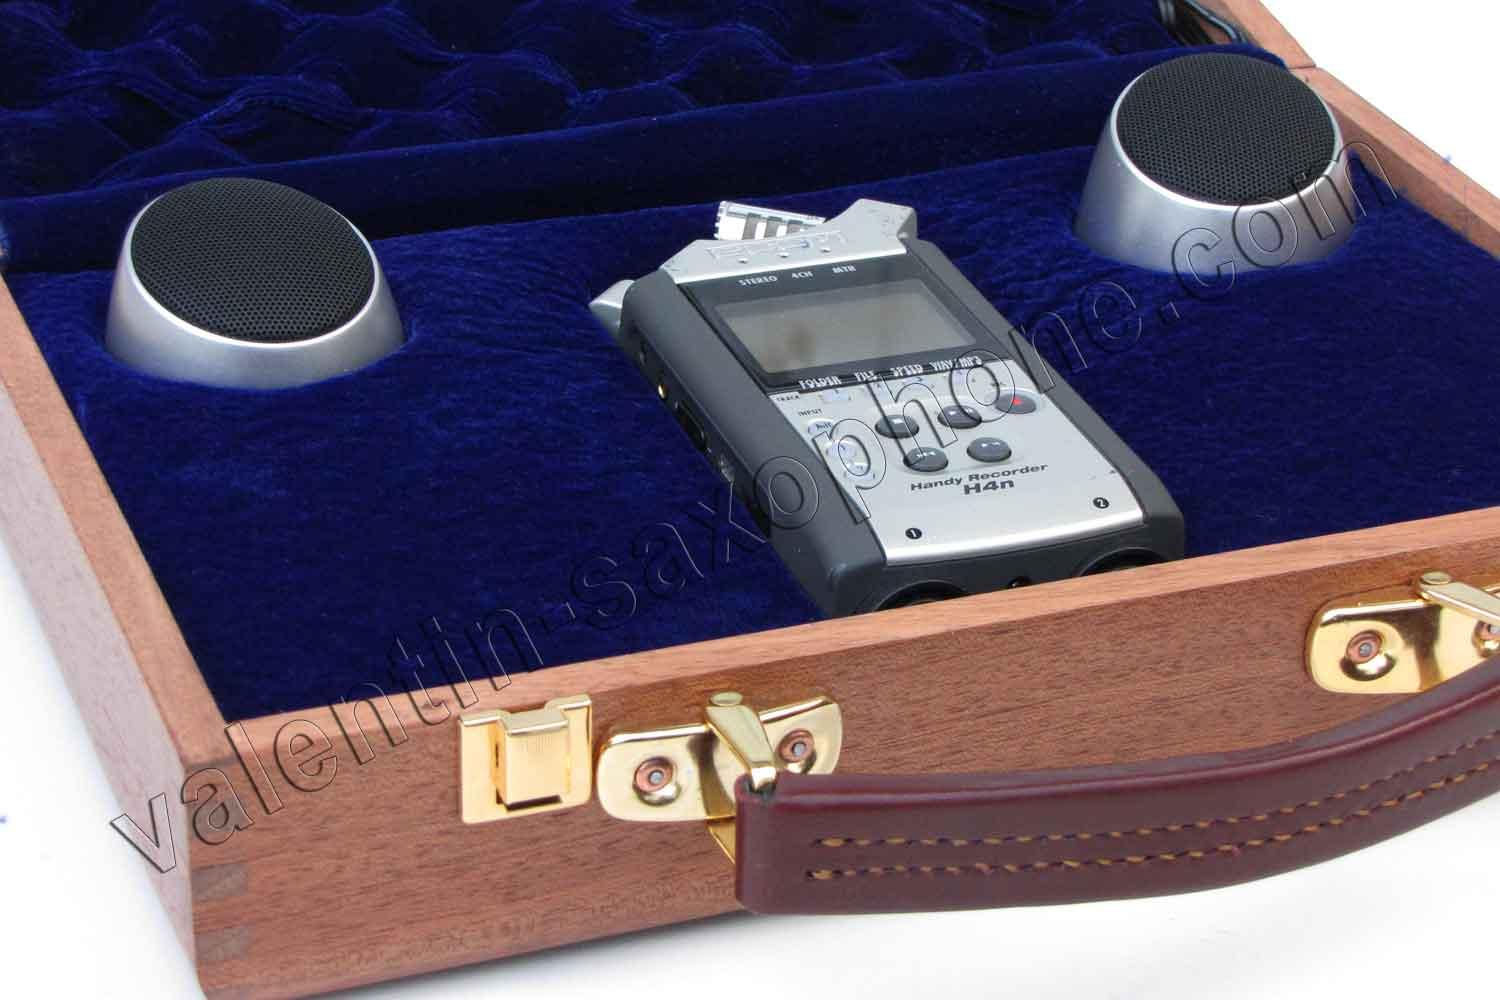 Valentin cases : This Deluxe suitcase keeps your digital recorder safe and secure.<br>The device is not included in the sale.